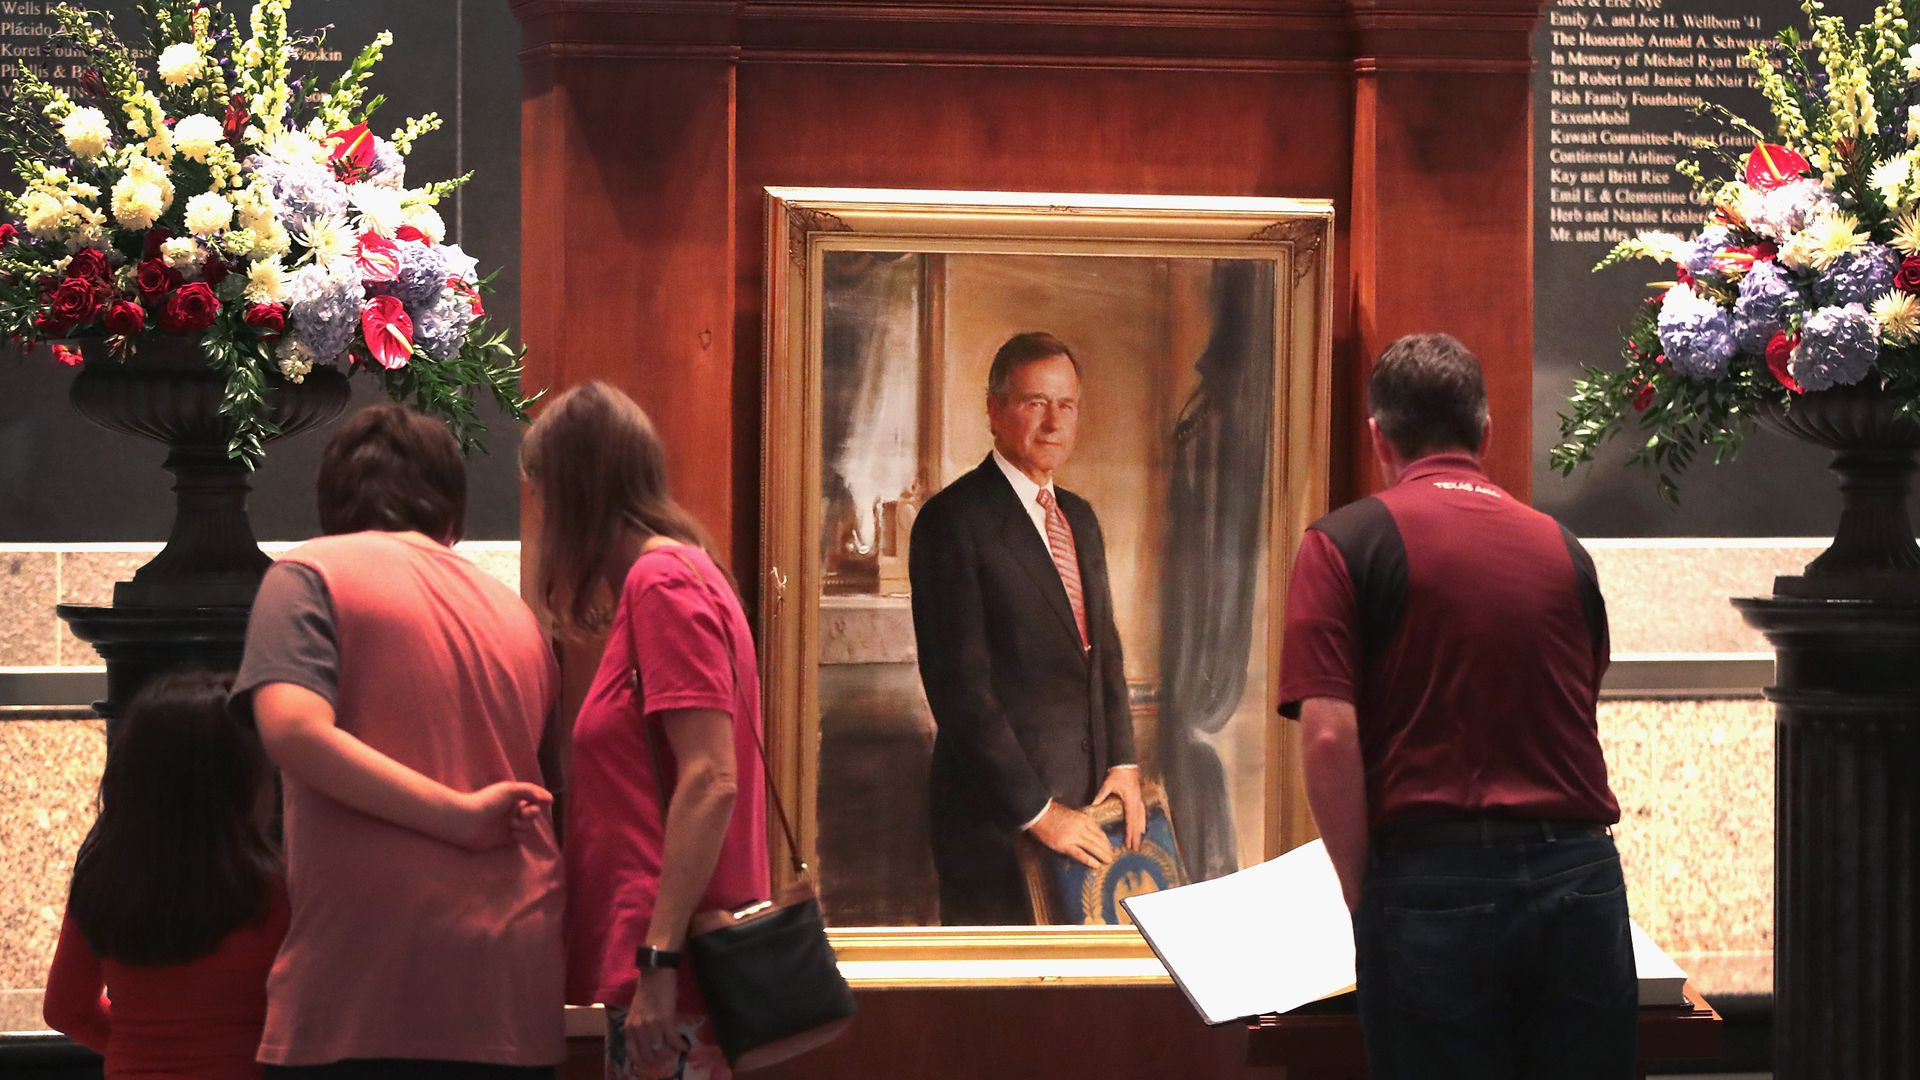 Visitors sign a guest book at the George H.W. Bush Presidential Library Center in College Station, Texas.